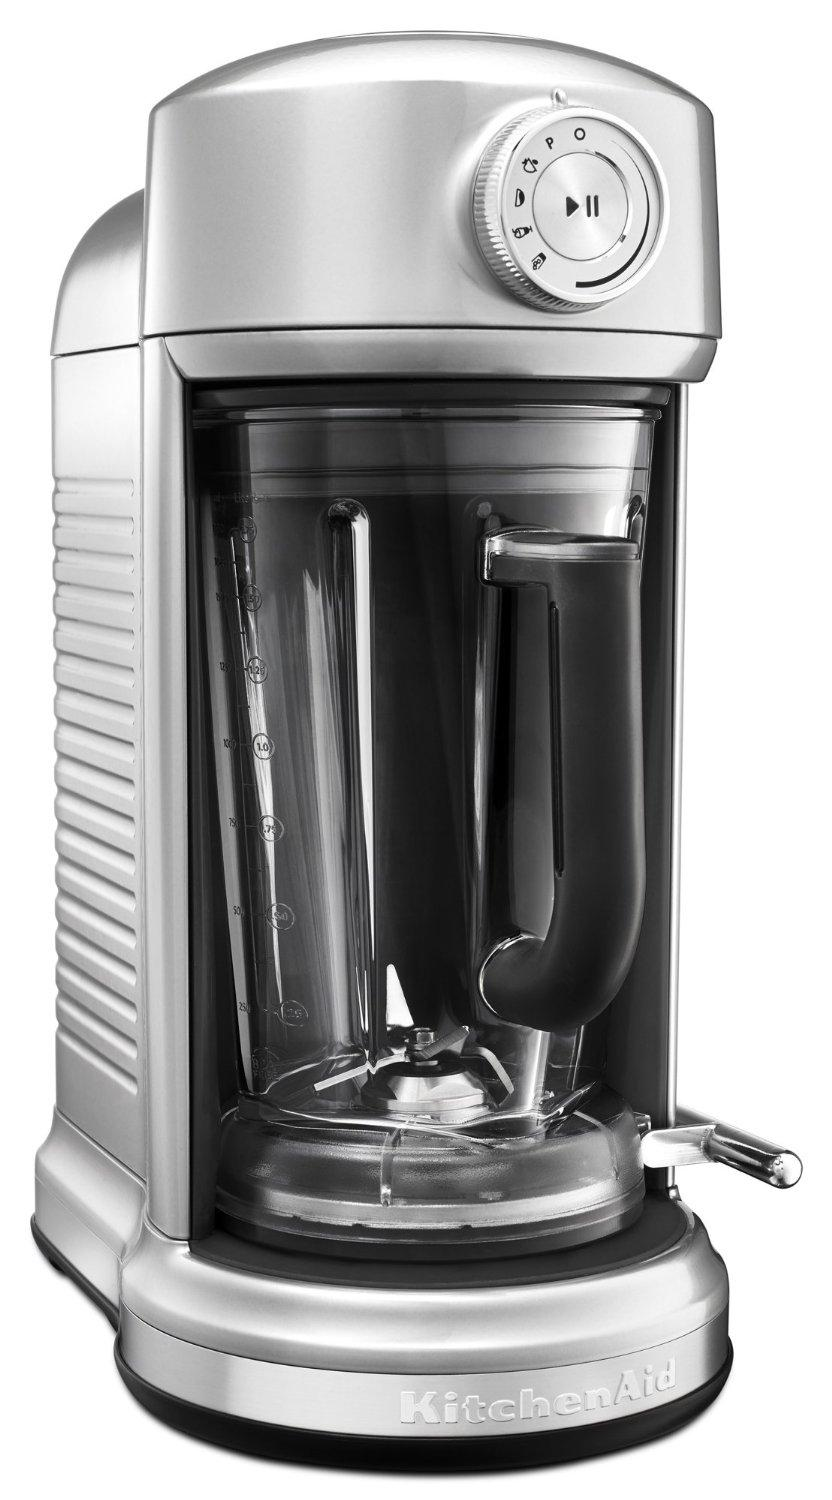 Ksb5010sr Kitchenaid Ksb5010sr Small Appliances Sugar